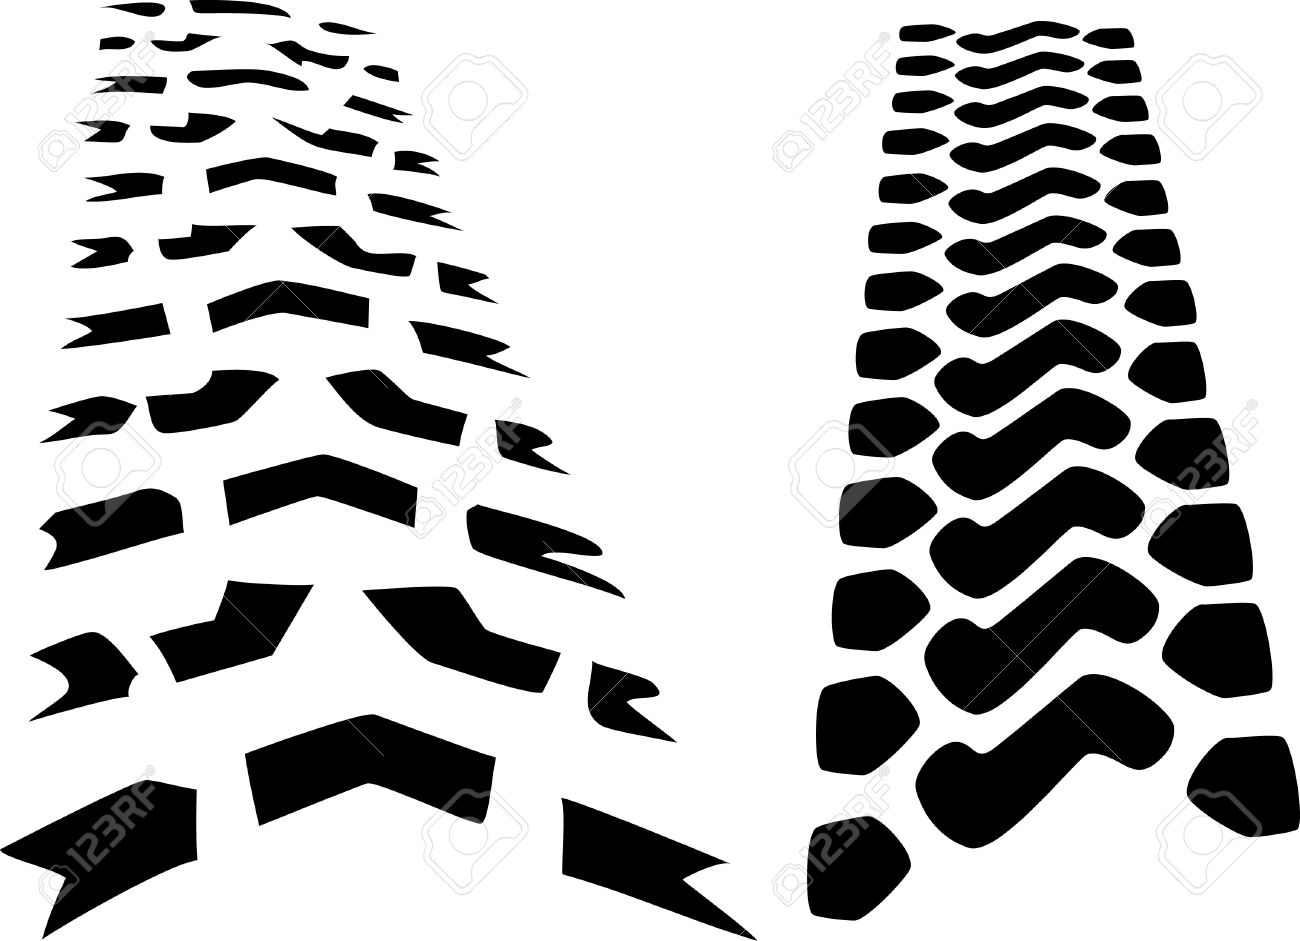 tracks tractor tires royalty free cliparts vectors and stock rh 123rf com tire tracks vector free download tire tracks vector free download